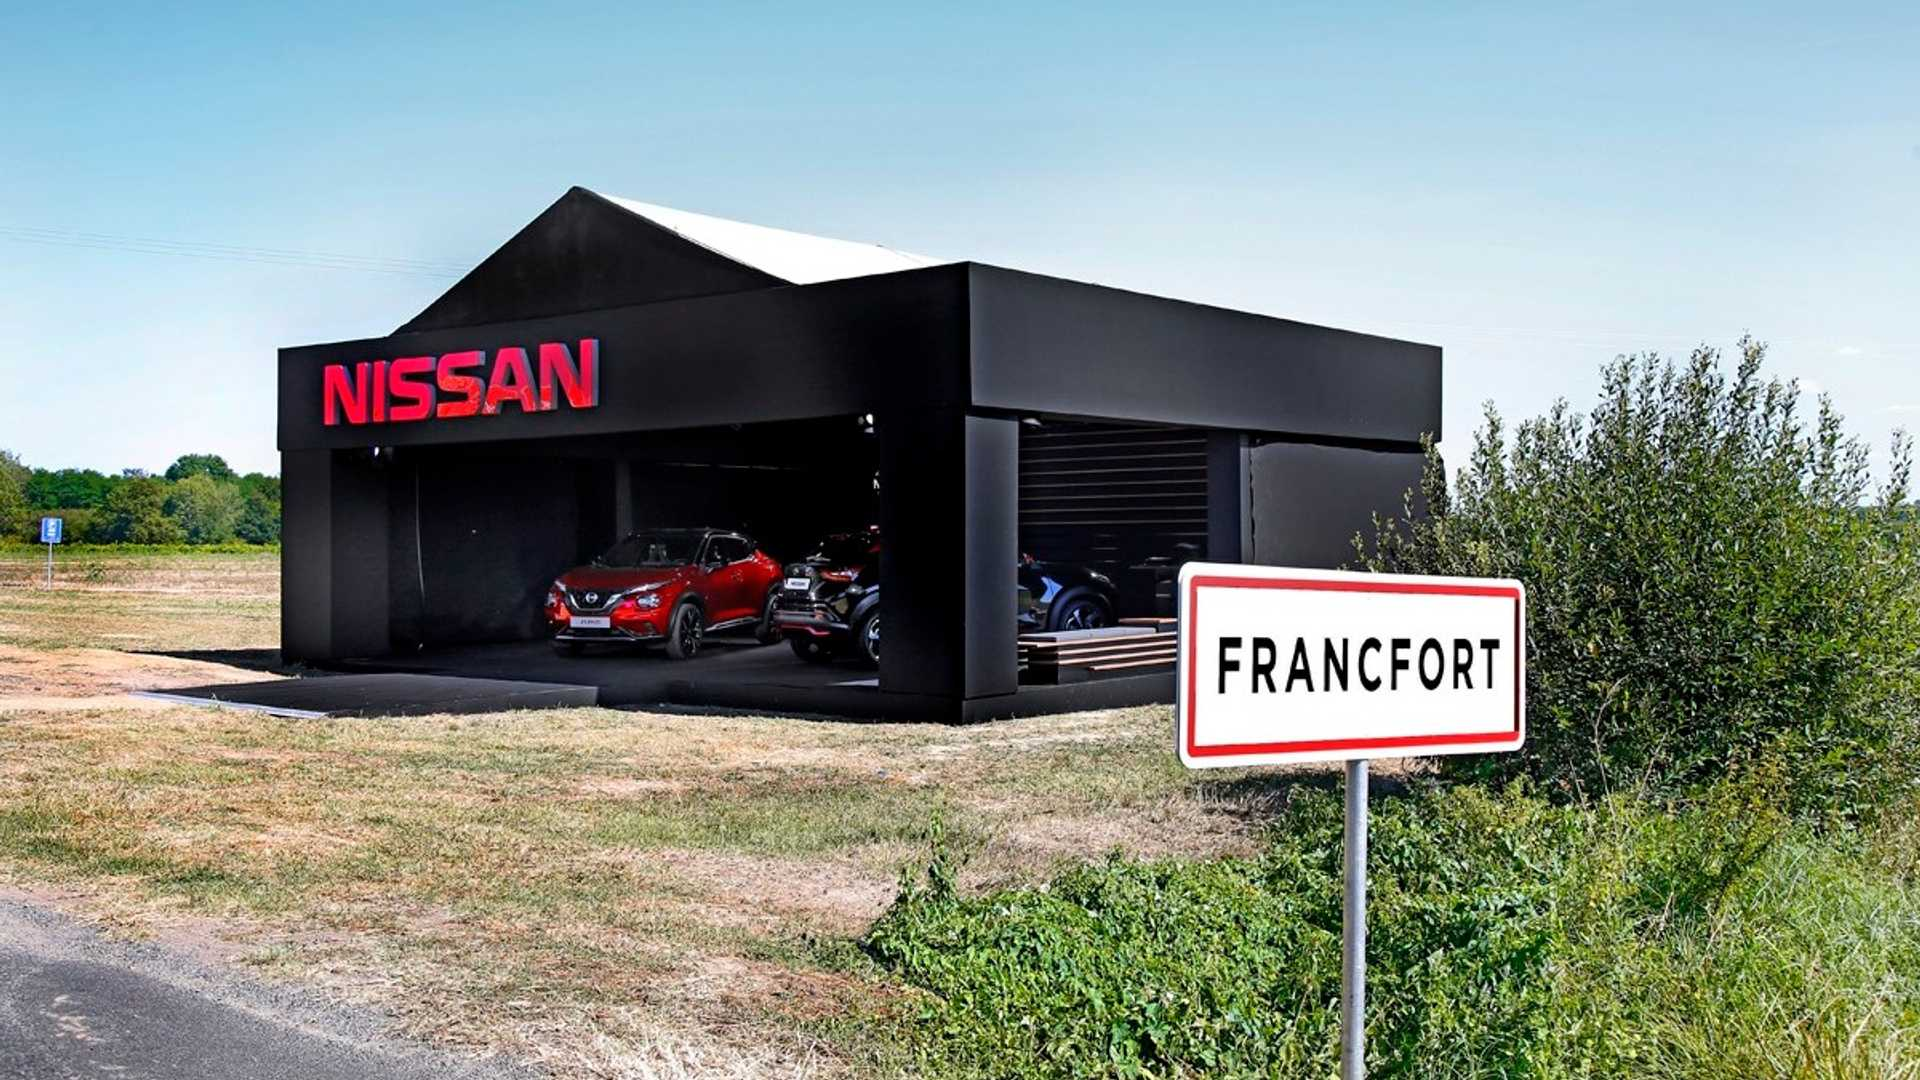 After Nissan waived participation in the Frankfurt Motor Show 2019, it went and organized its own automotive event in a tiny, isolated village of Francfort, France. It has even brought its 2nd-gen Nissan Juke there!